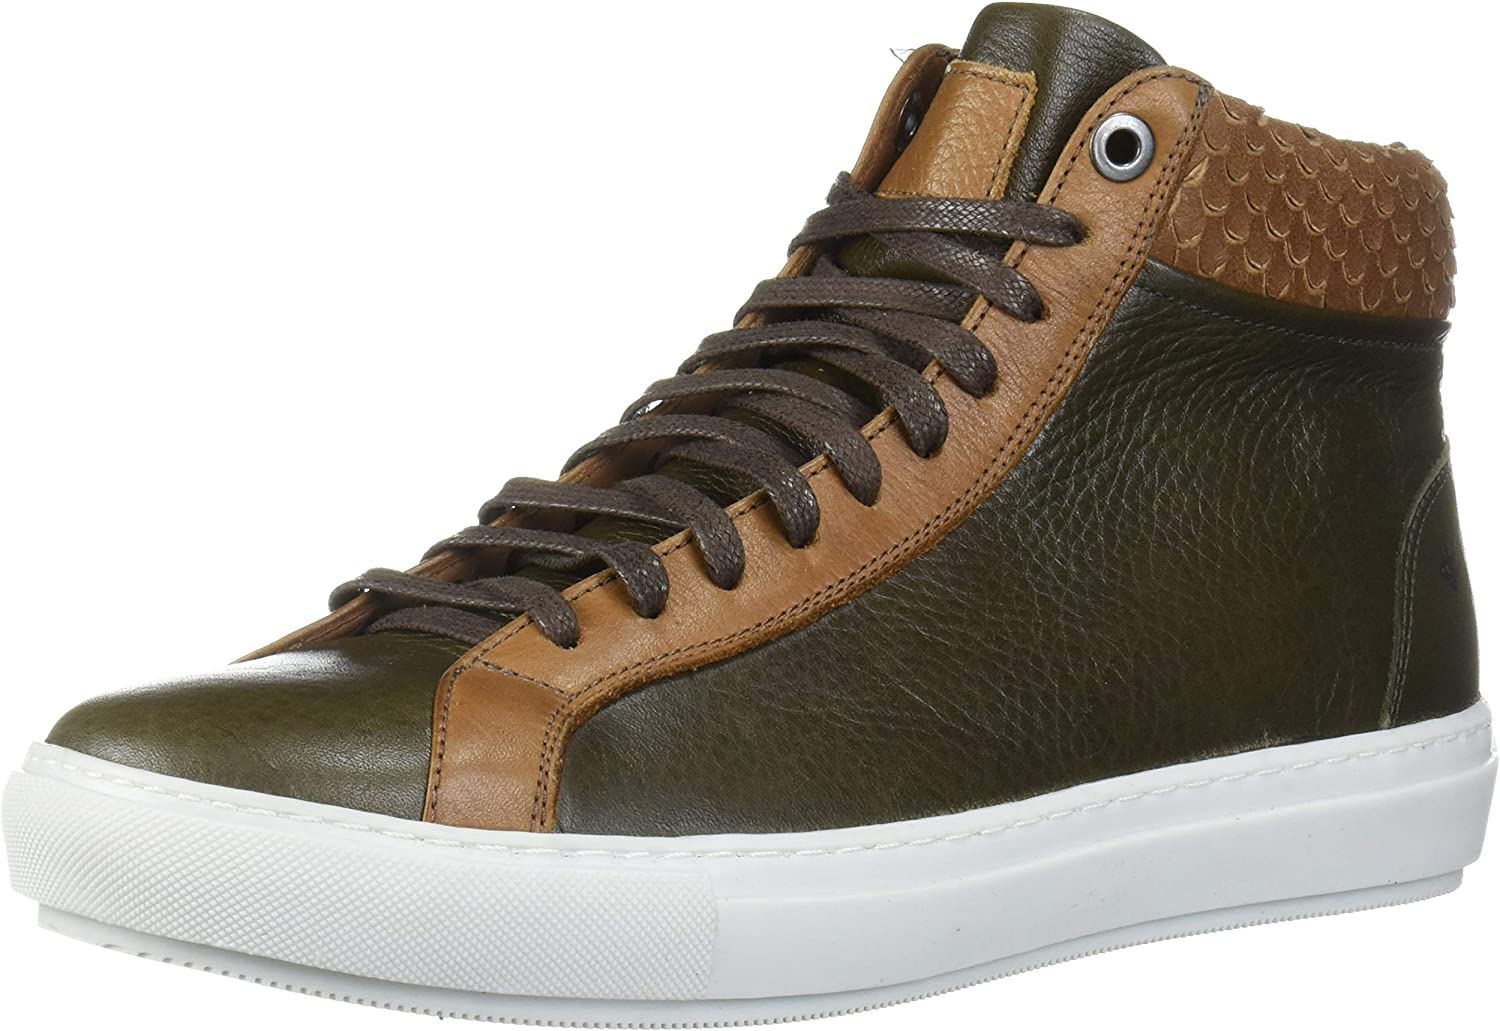 Brothers United Men's Limited time for free shipping Leather Luxury Lace Up Fashion Challenge the lowest price Sneaker